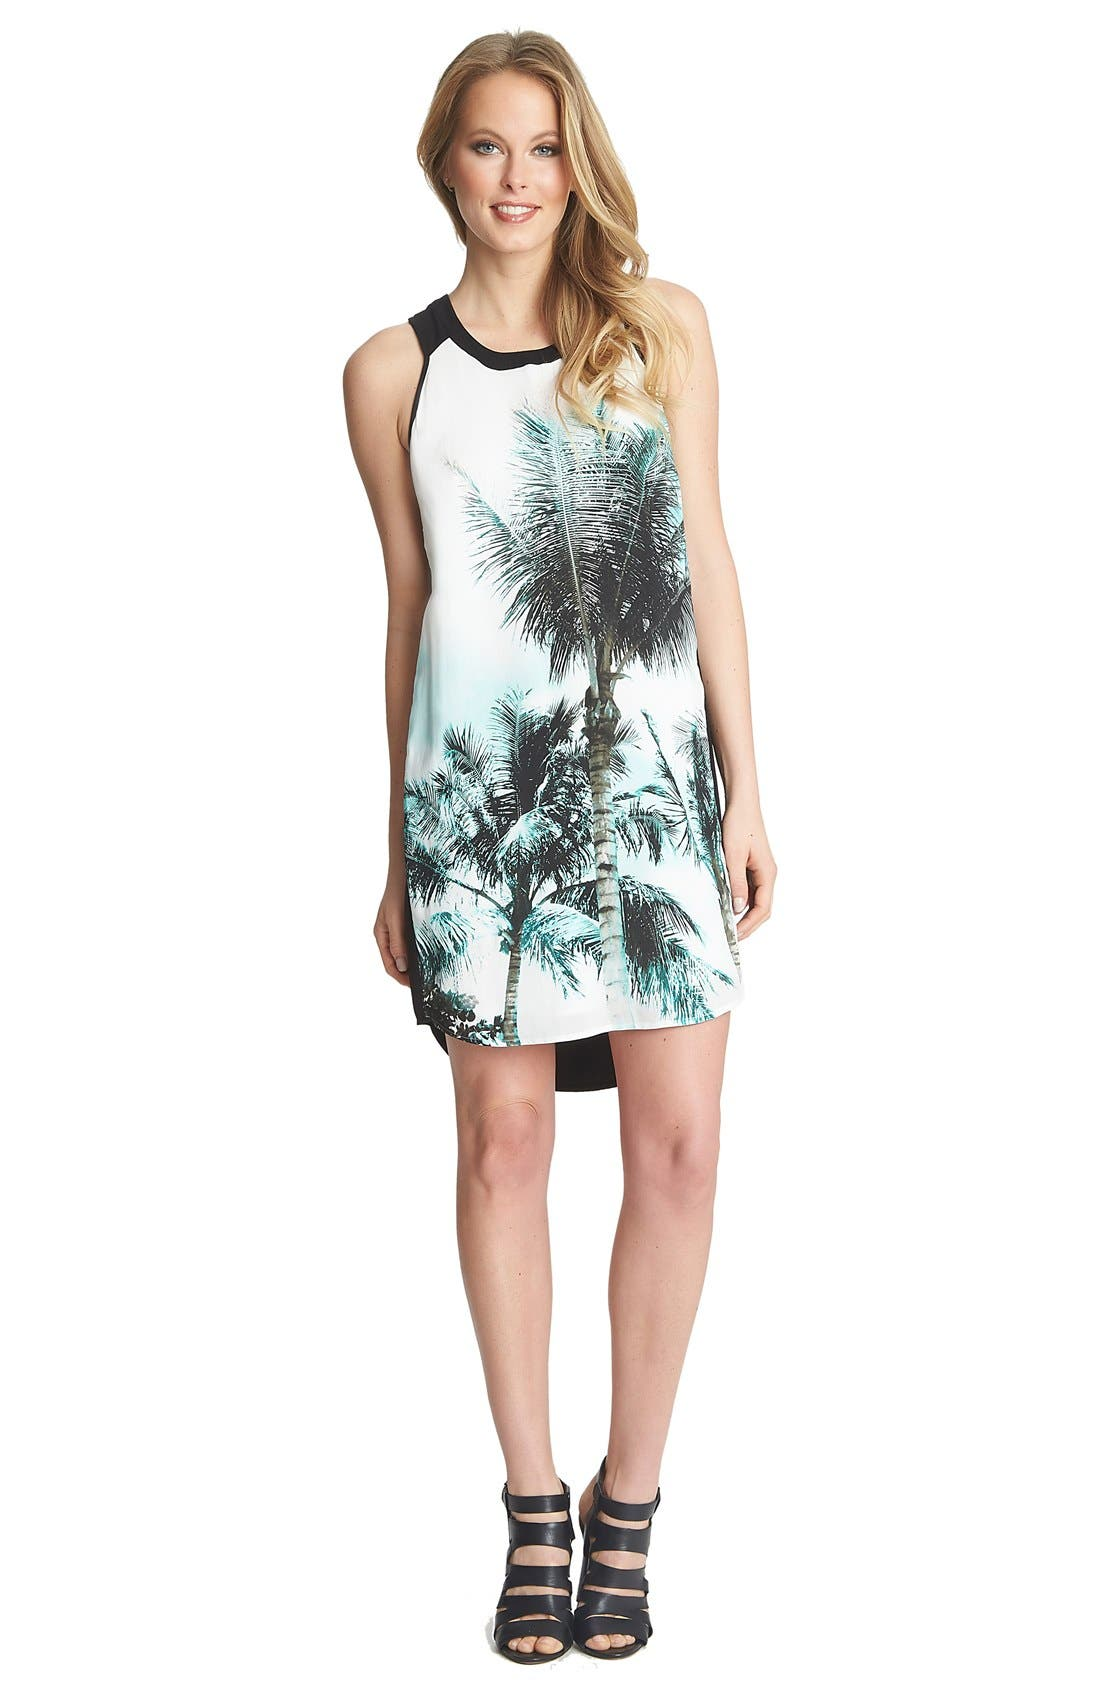 Main Image - 1.STATE 'Palm Whimsy' Sleeveless Shift Dress